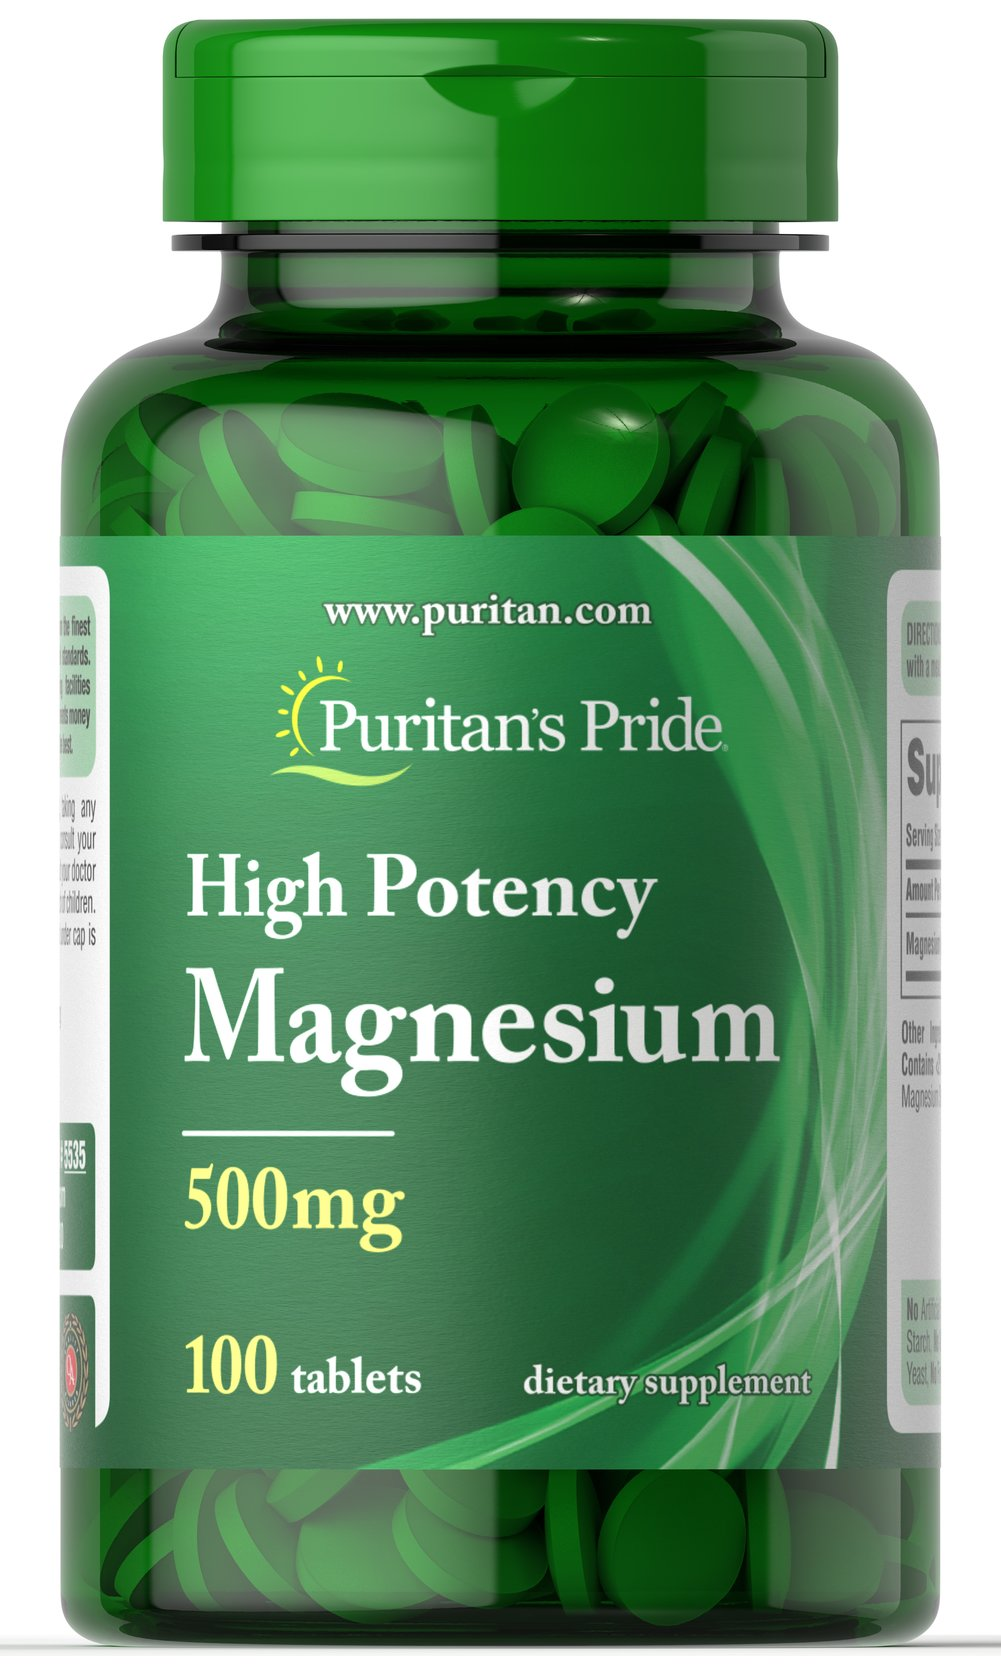 Magnesium 500 mg <p>Magnesium offers another option, besides Calcium, for supporting bone health.** Magnesium plays an essential role in maintaining bone mineralization, and is also involved in muscle contractions and nerve impulses.** Adults can take one caplet daily with a meal.</p> 100 Tablets 500 mg $10.49